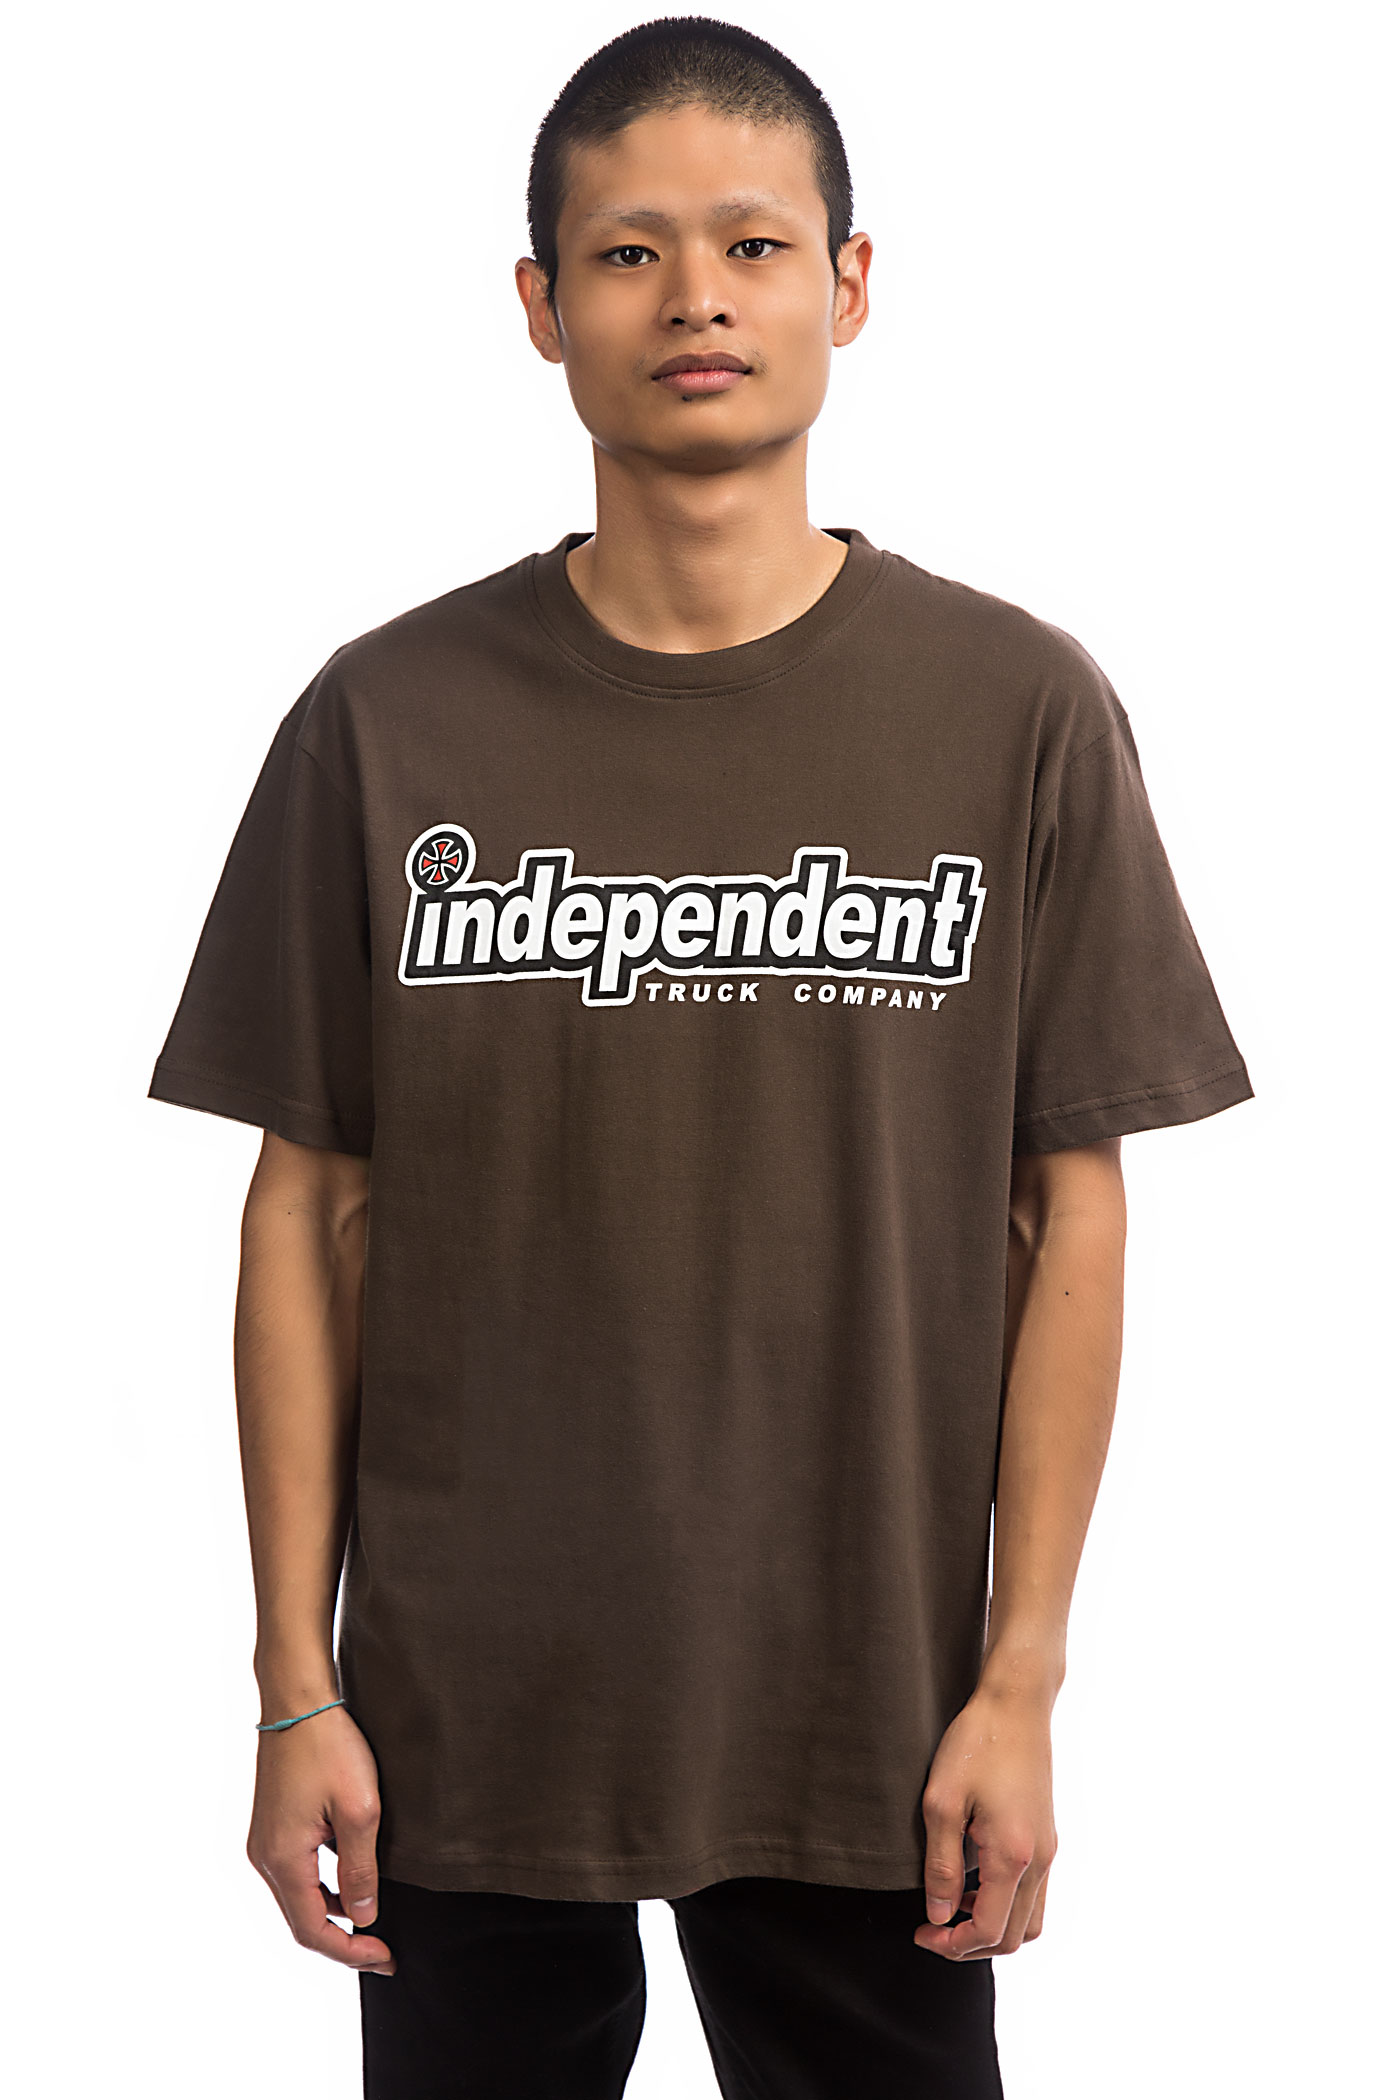 Independent T shirtdark Outline Chocolate Independent trCBdQxsh